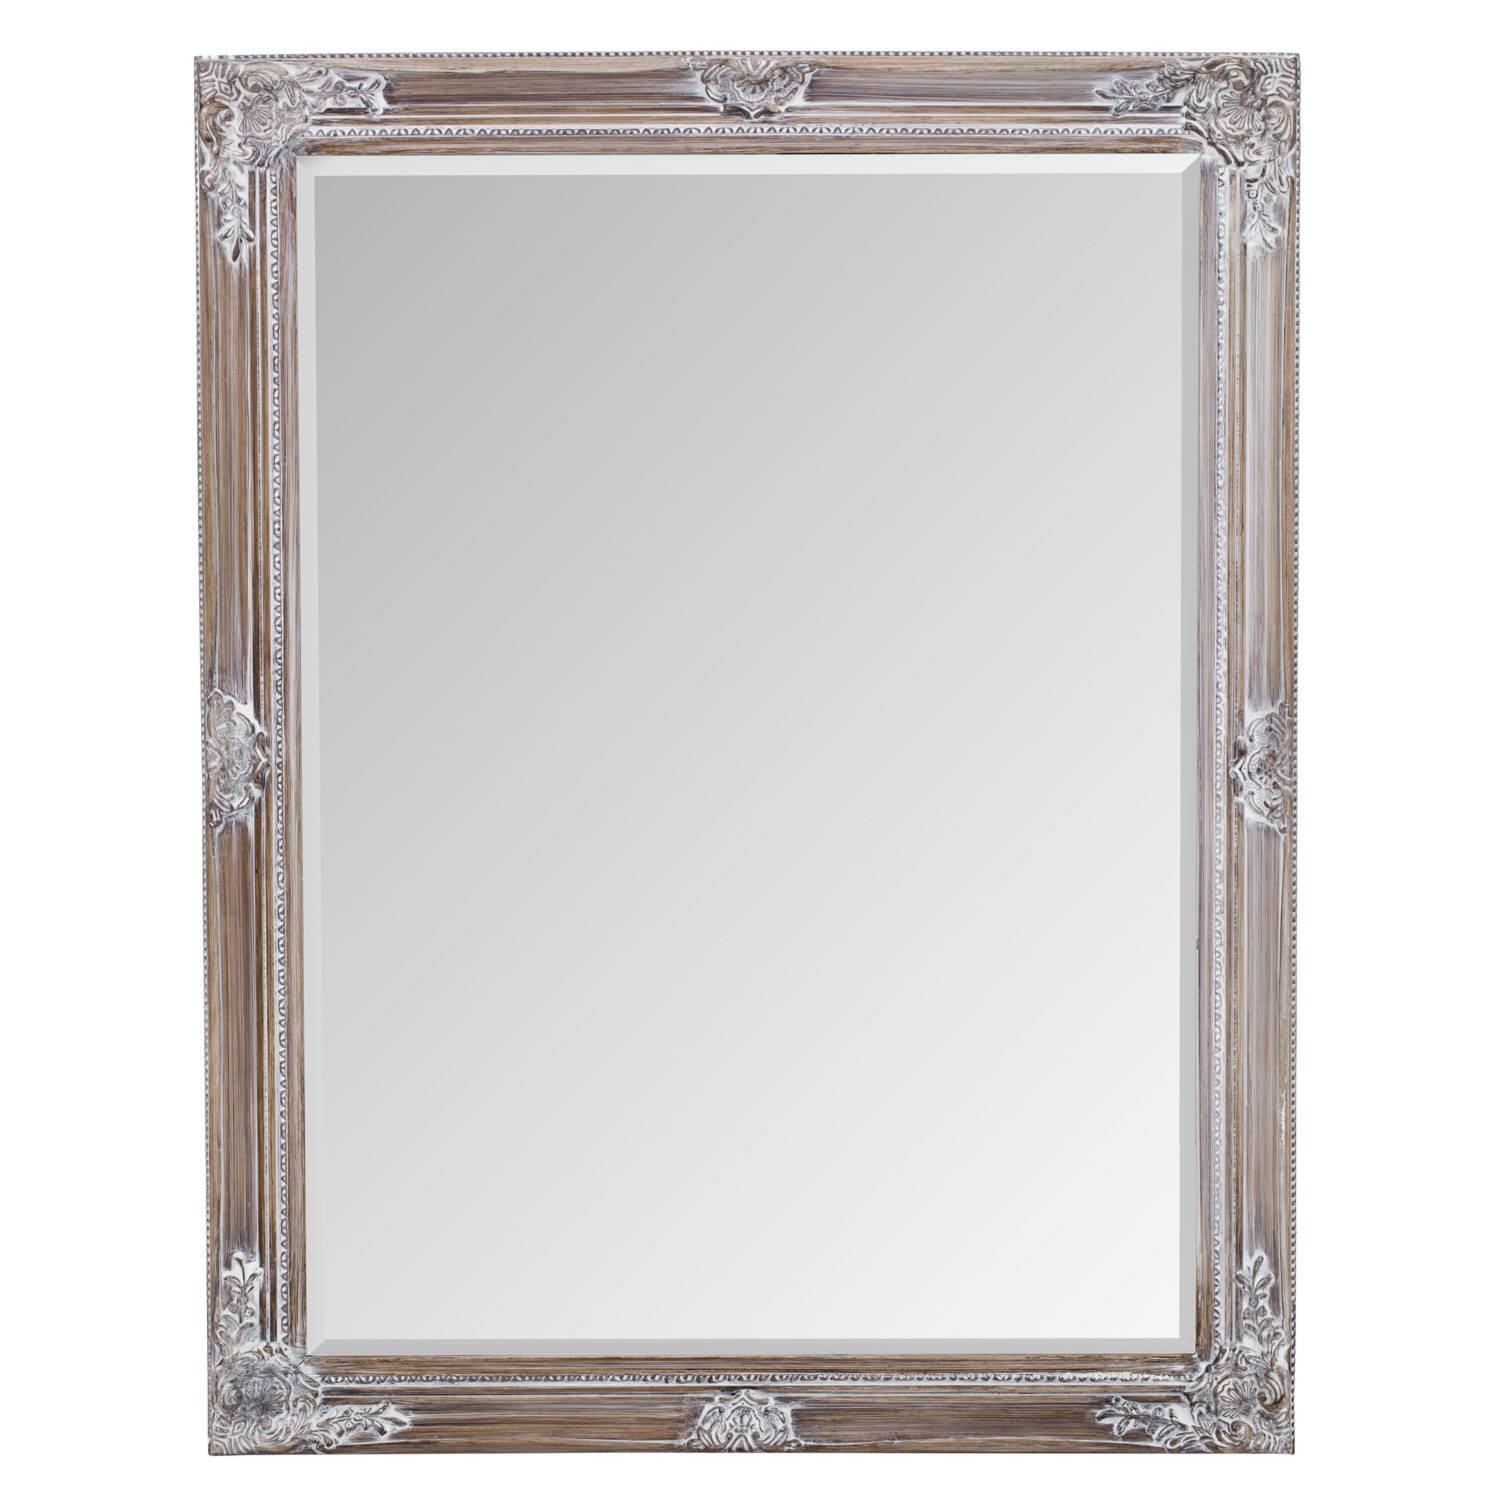 Vintage White Ornate Mirror intended for White Ornate Mirrors (Image 20 of 25)